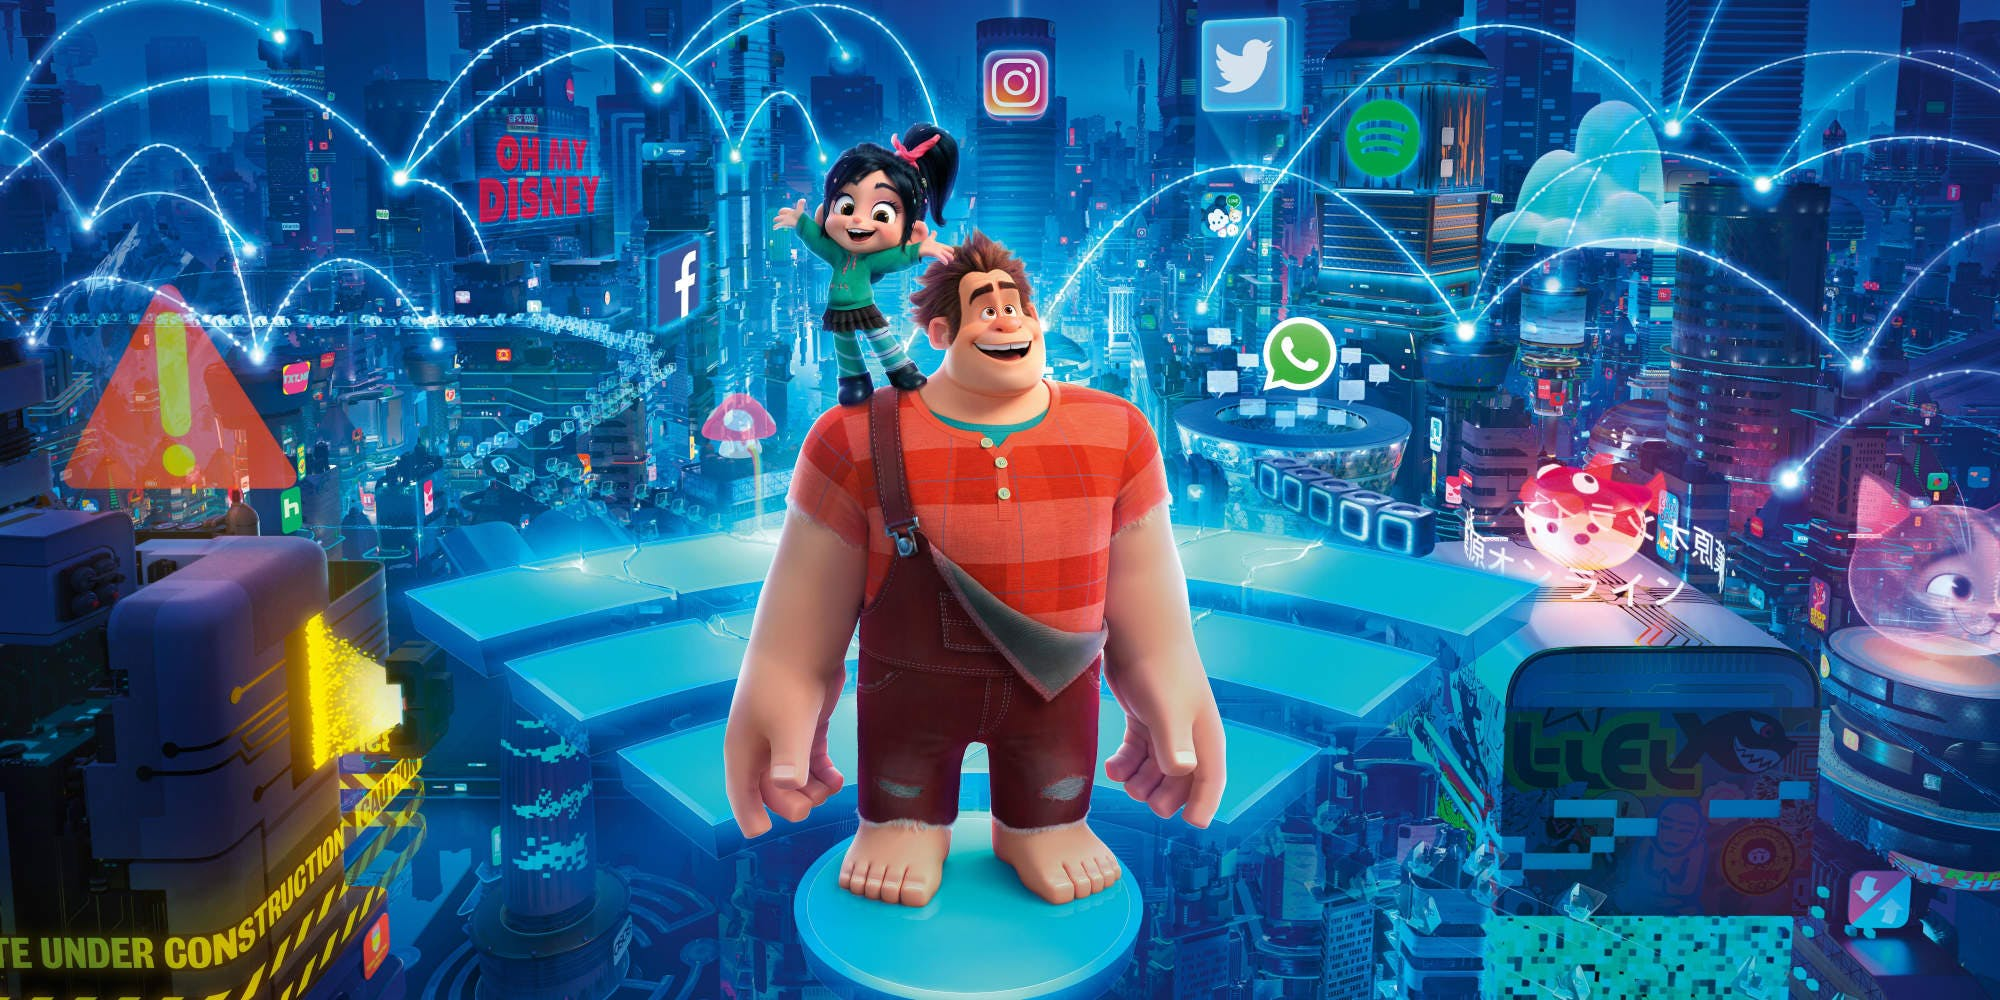 Ralph breaks the internet Fortnite